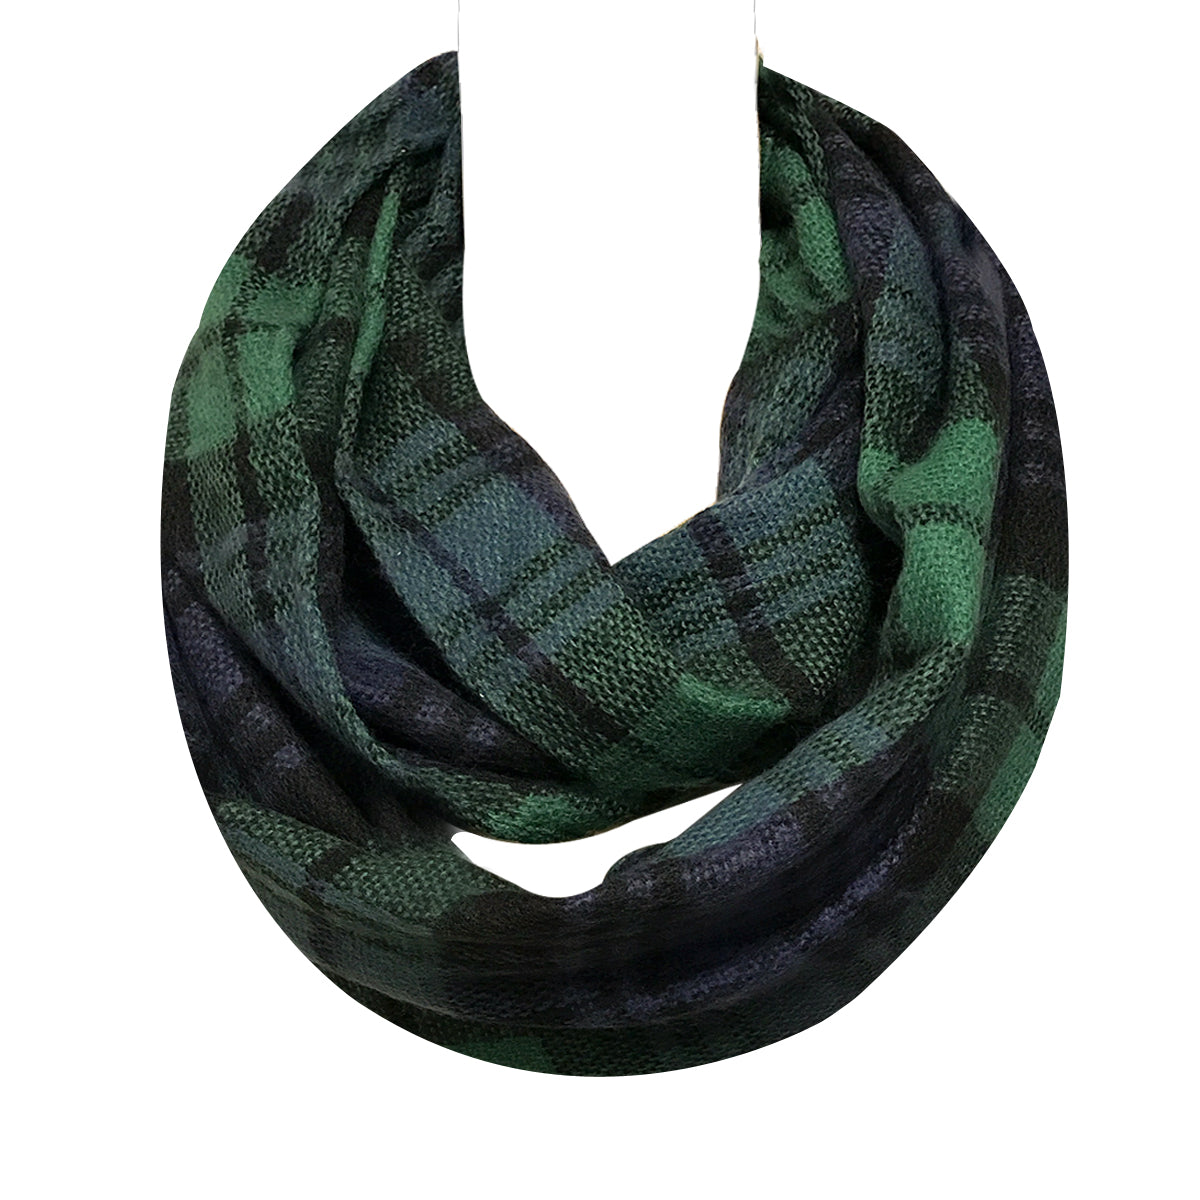 Wrapables Plaid Print Infinity Scarf